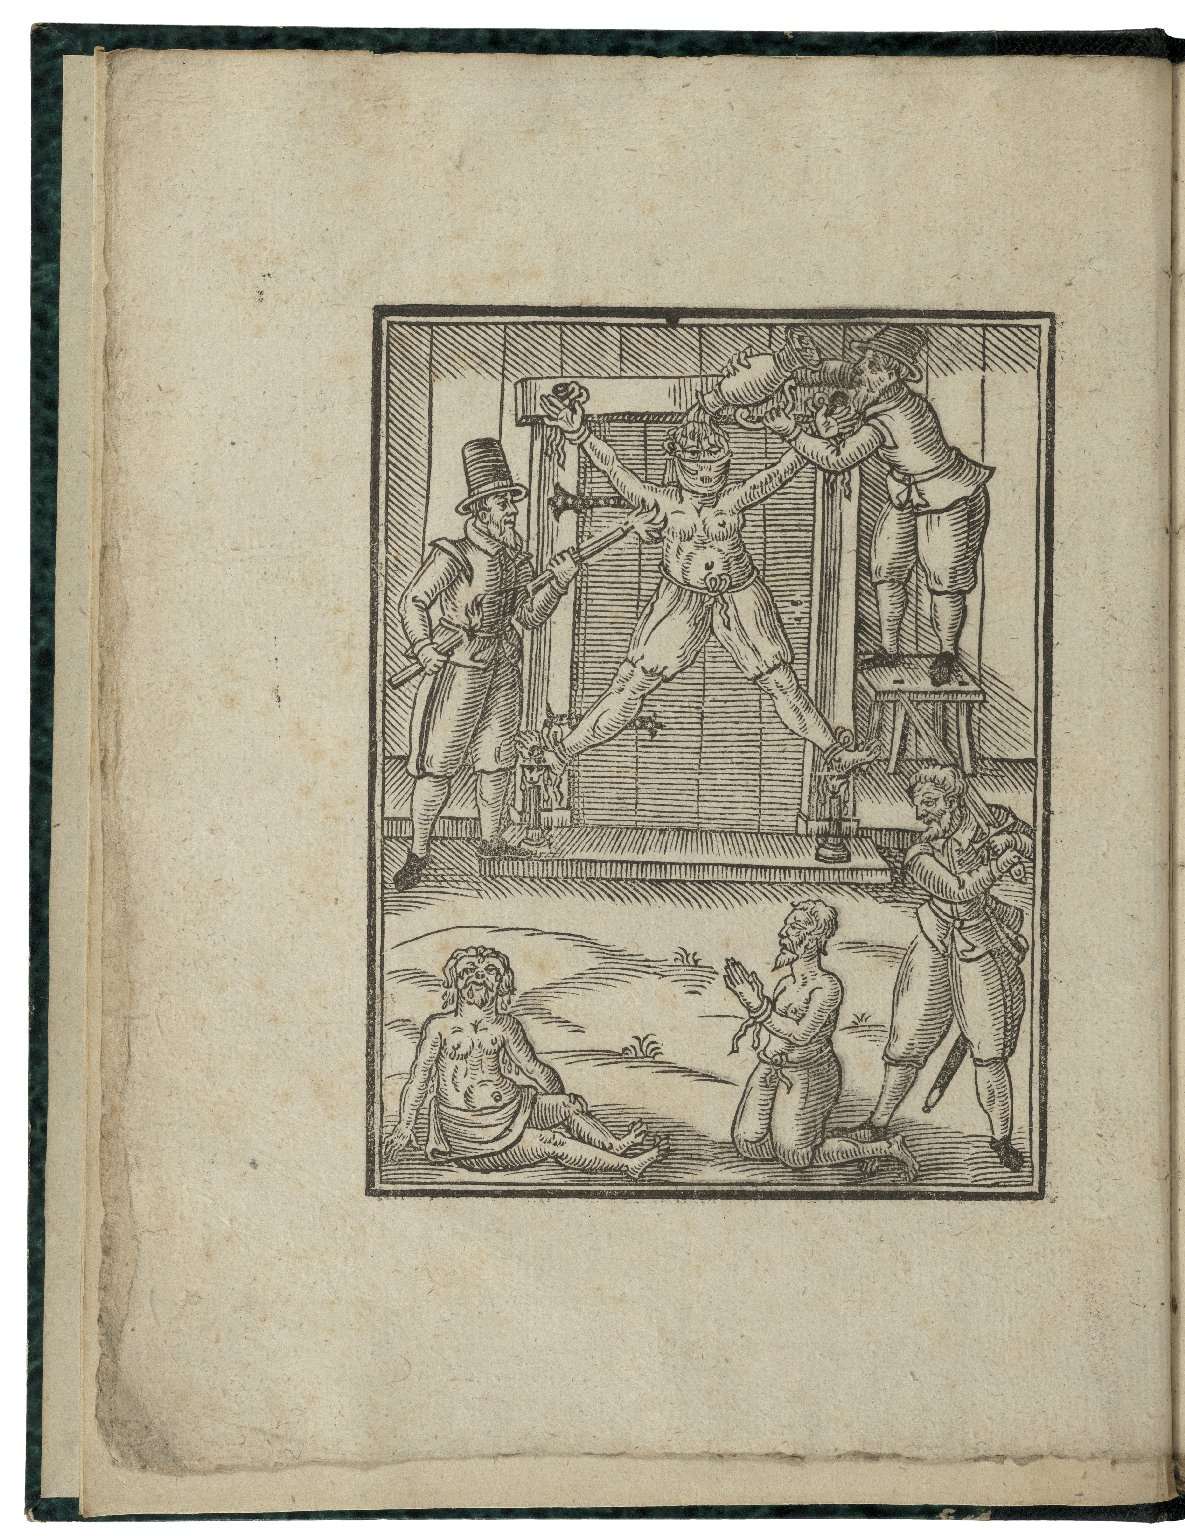 A true relation of the vniust, cruell, and barbarous proceedings against the English at Amboyna in the East-Indies, by the Neatherlandish gouernour and councel there. Also the copie of a pamphlet, set forth first in Dutch and then in English, by some Neatherlander; falsly entituled, A true declaration of the newes that came out of the East-Indies, with the pinace called the Hare, which arriued at Texel in Iune, 1624. Together with an answer to the same pamphlet. By the English East-India Companie. Published by authoritie.